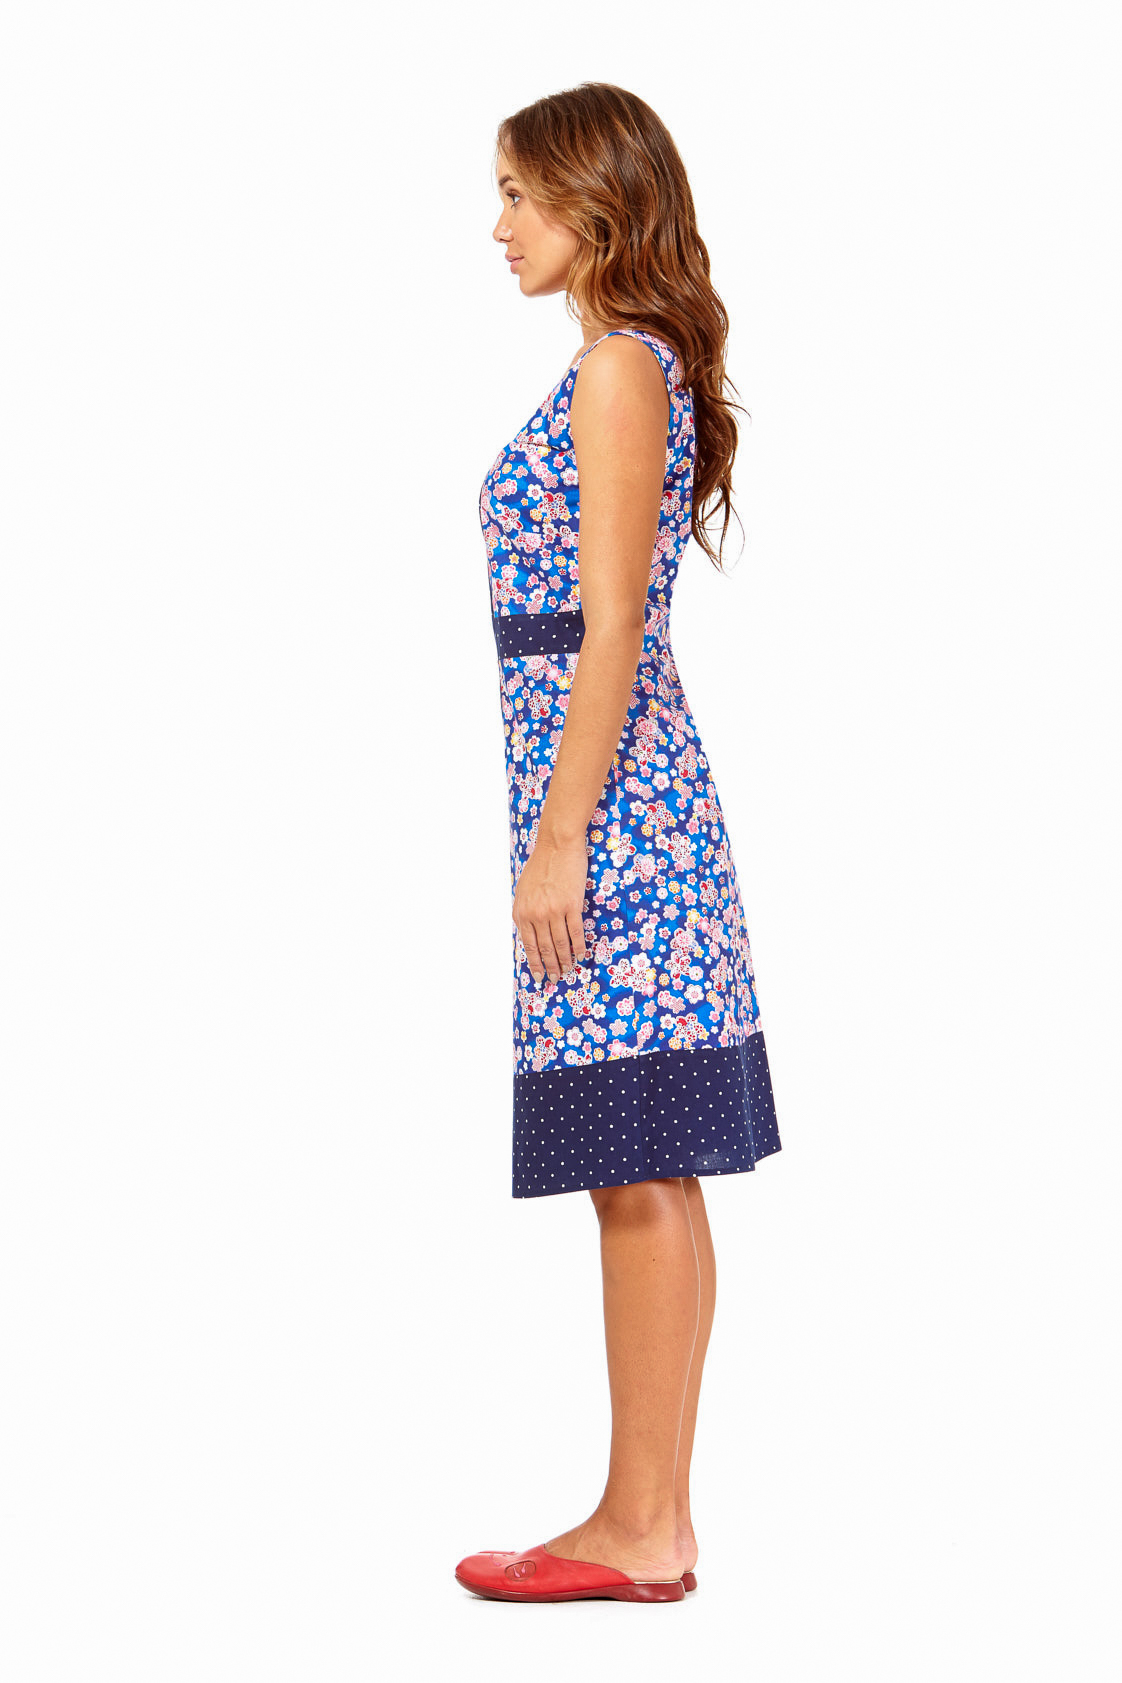 d4eadeb1 Ava Cotton Shift Dress in Sakura and Navy spot Prints